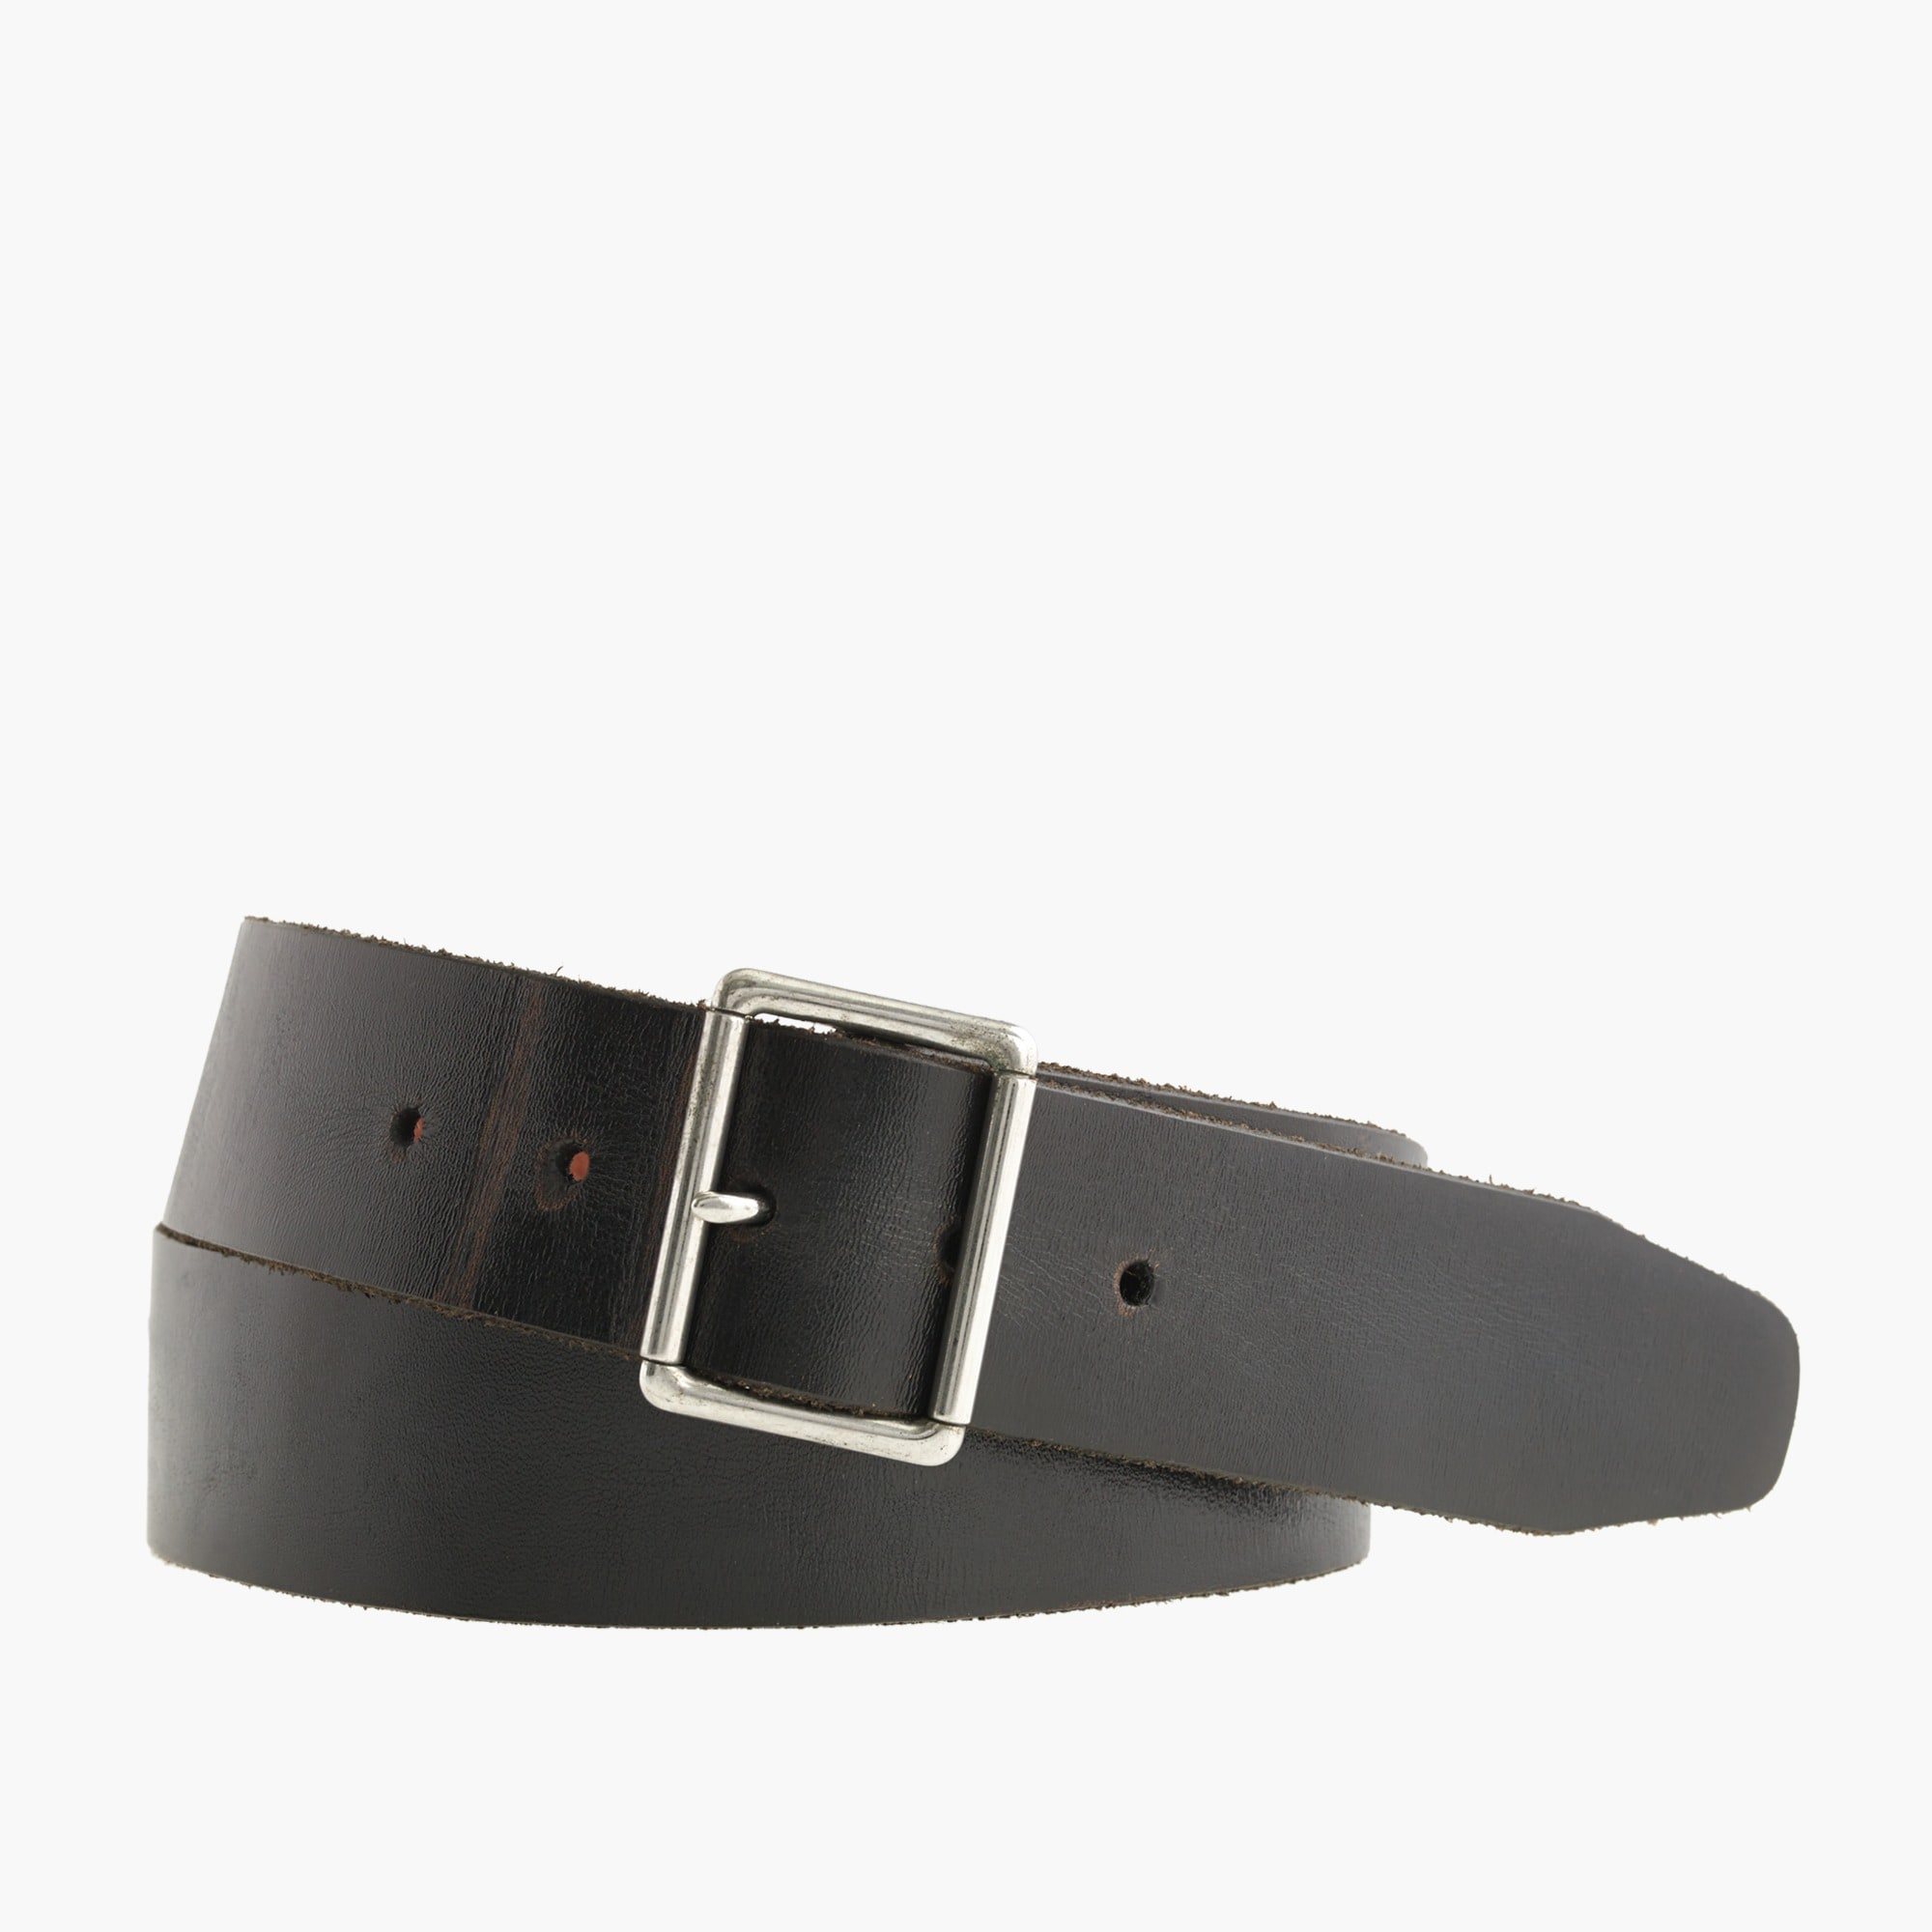 men's wallace & barnes tannery belt - men's accessories